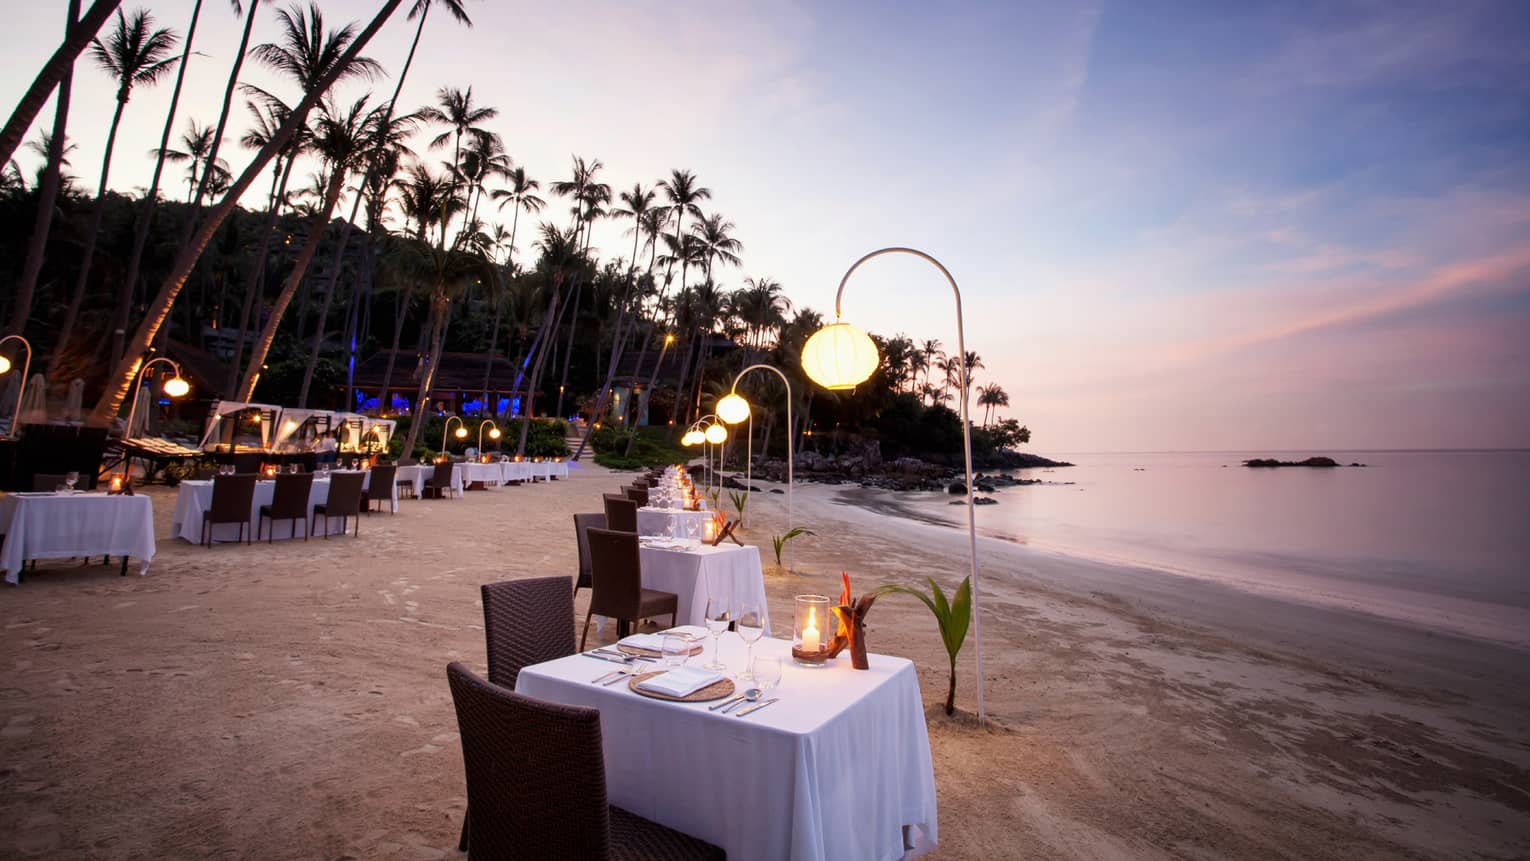 Barbecue on the beach with dining tables on the sand